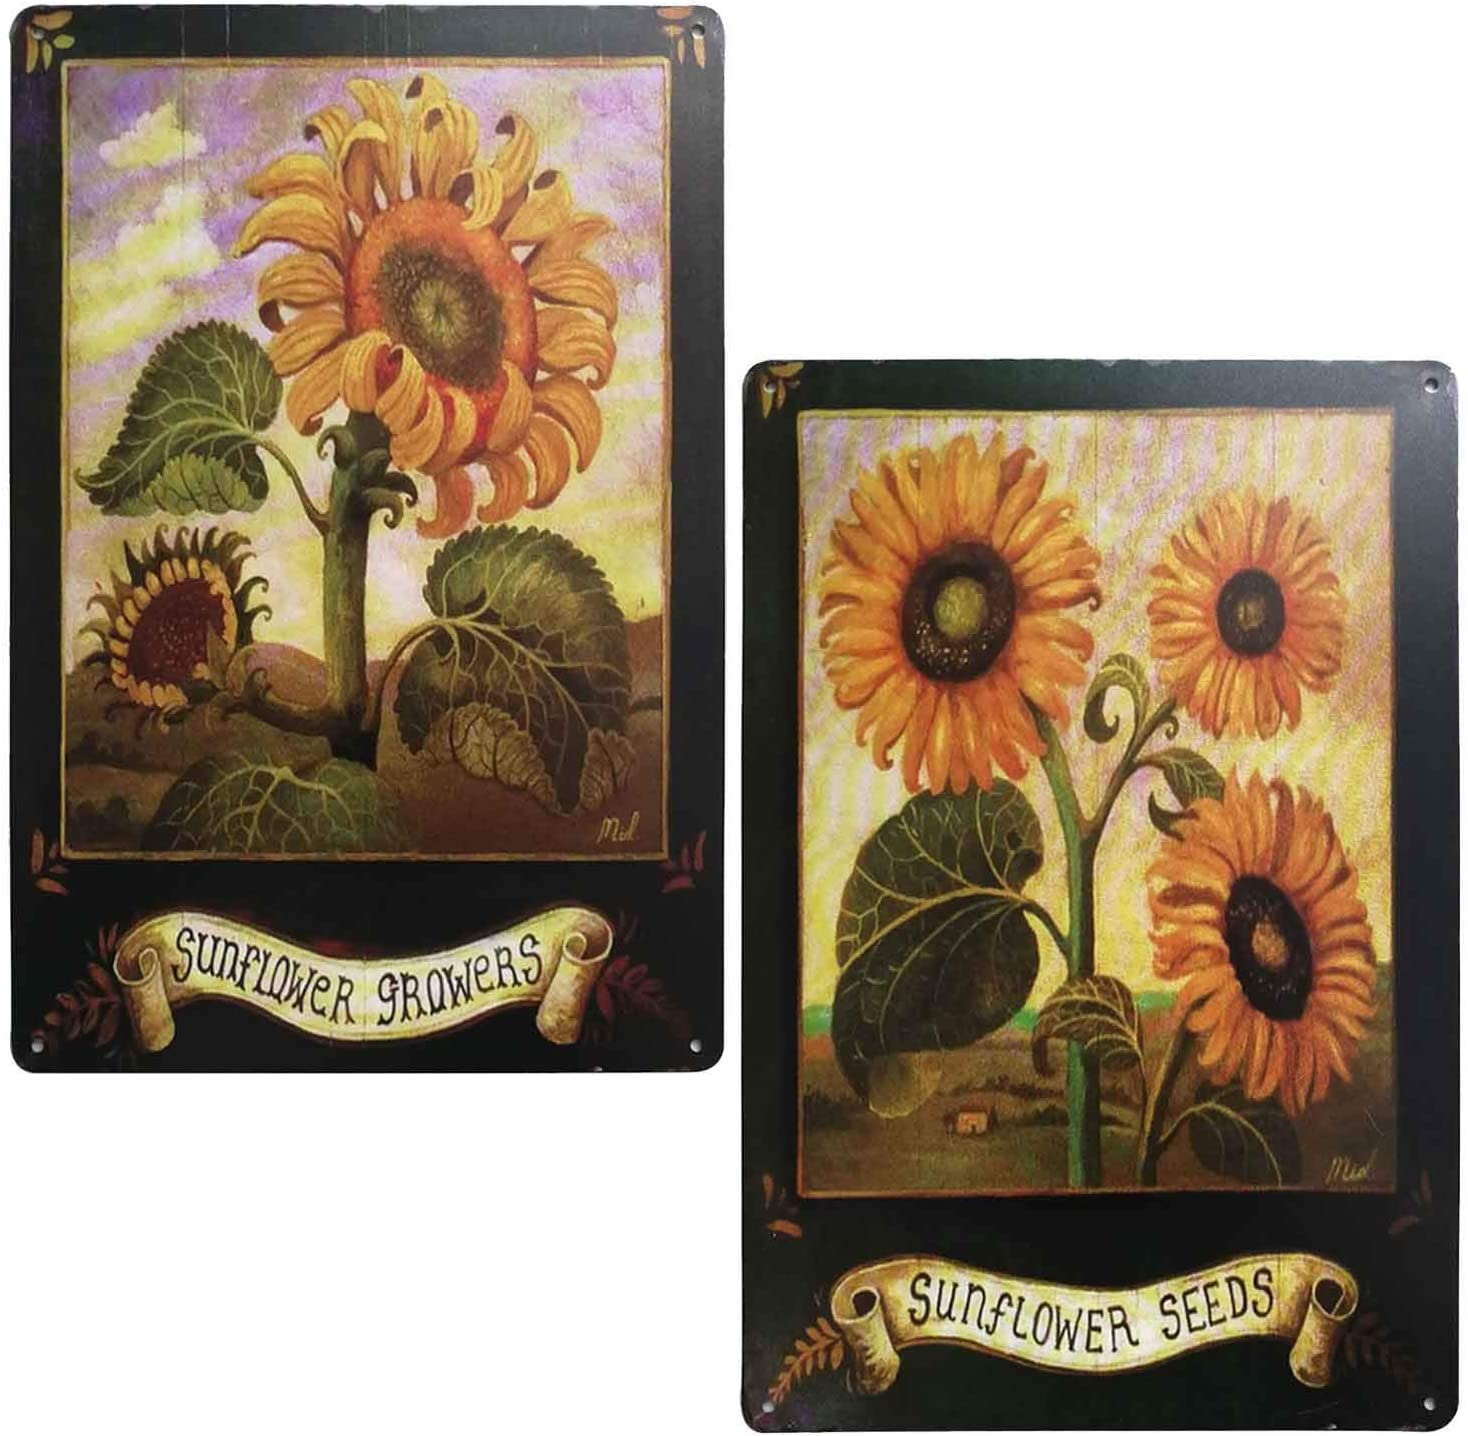 TISOSO Sunflower Growers Vintage Style Tin Sign Country Home Decor Wall Art Posters and Prints Home Office Decoration 2Pcs-8X12Inch